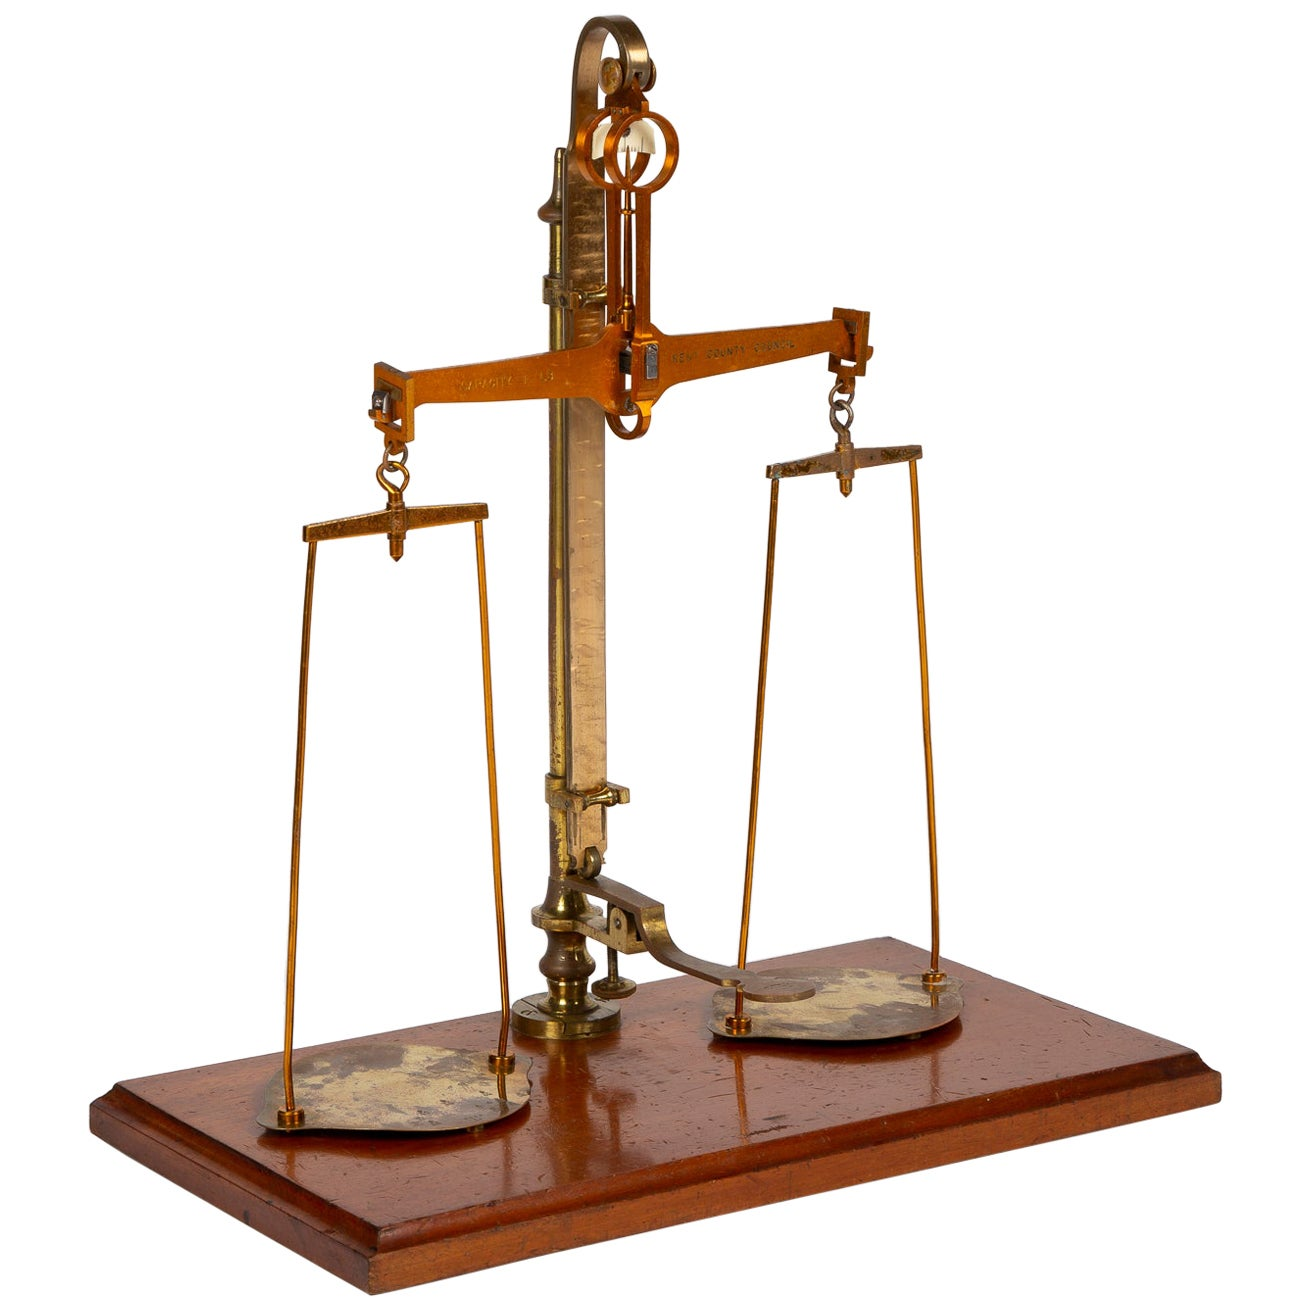 Scales Made for the County of Kent by Avery Dated 1898